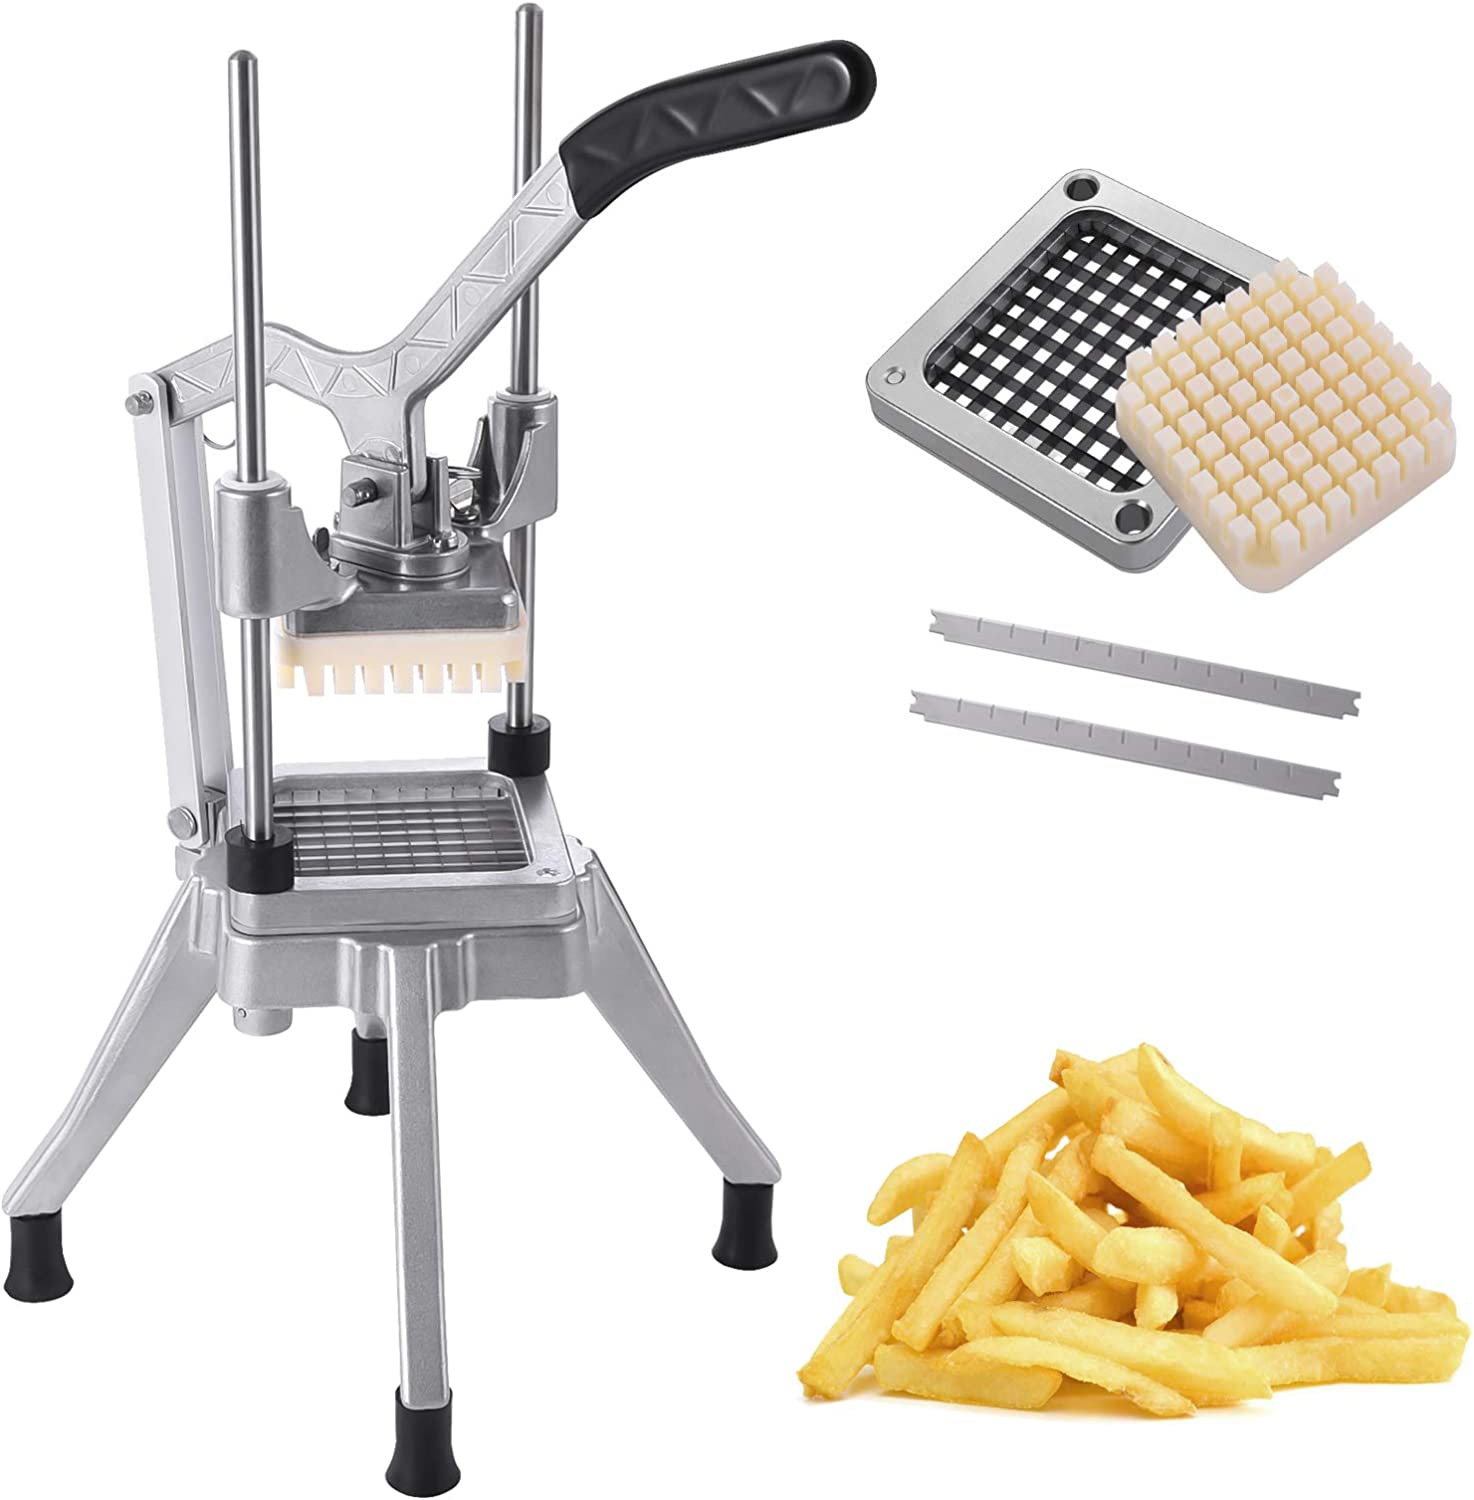 Frifer Commercial Vegetable Fruit French Fry Cutter, Upgraded Chopper Dicer Slicer with 1/4″ Blades, Professional Stainless Steel Food Cutter for Potato Carrot Tomato Mushroom (Cutter, 1/4